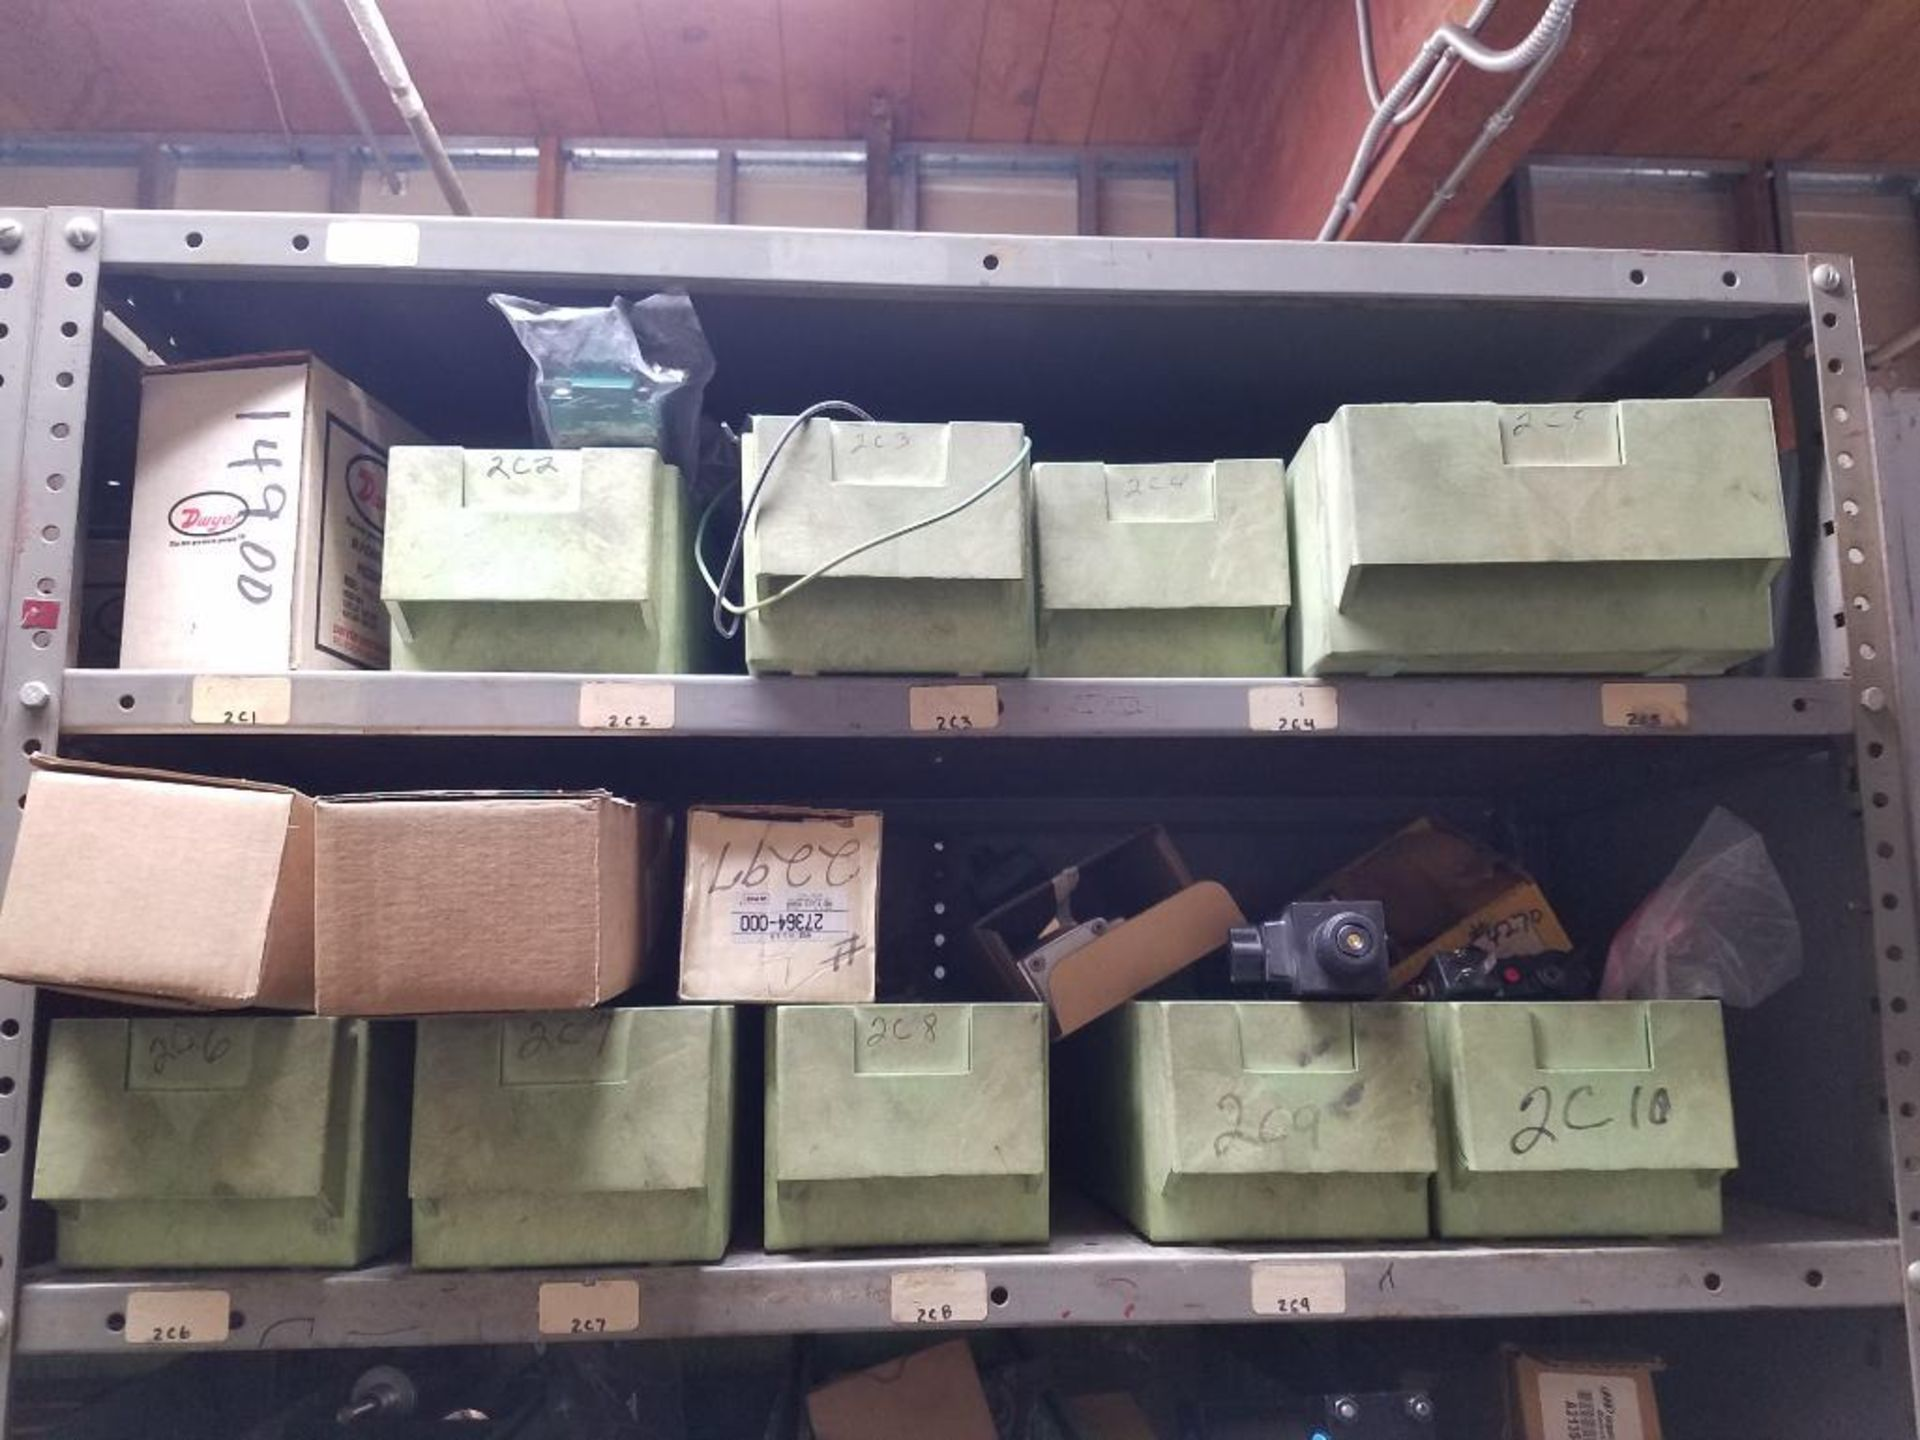 various replacement parts, conveyor belts, electrical components, gears and gauges - Image 11 of 21